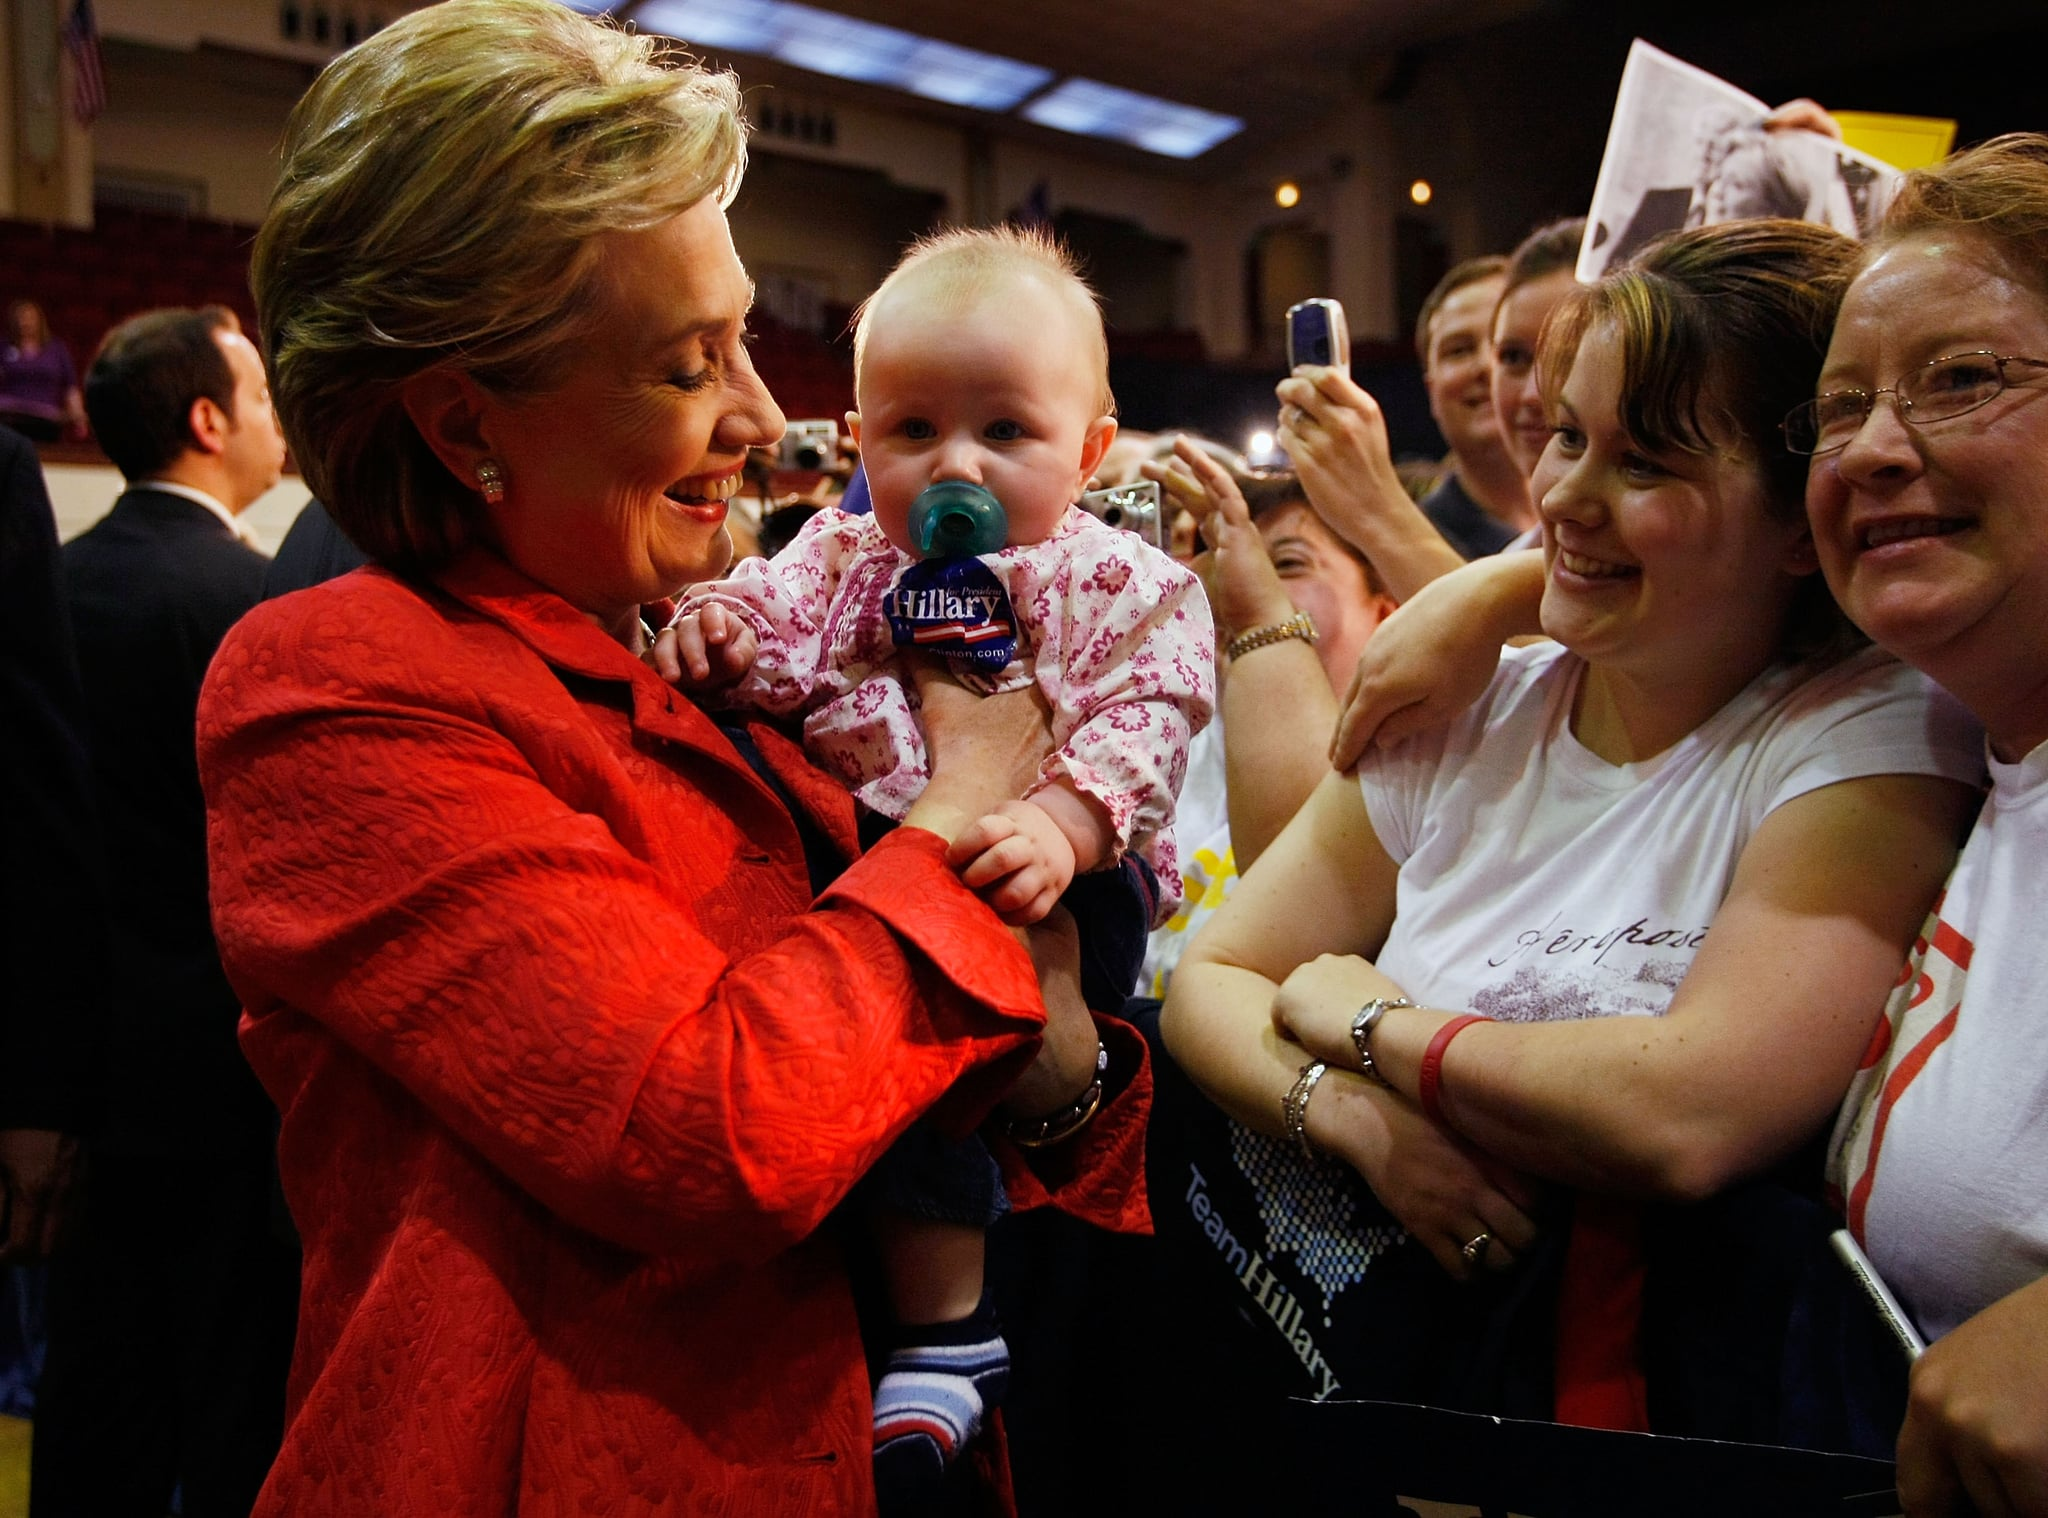 During a stop in Harrisburg, PA, Hillary Clinton picked up a young supporter in 2004.